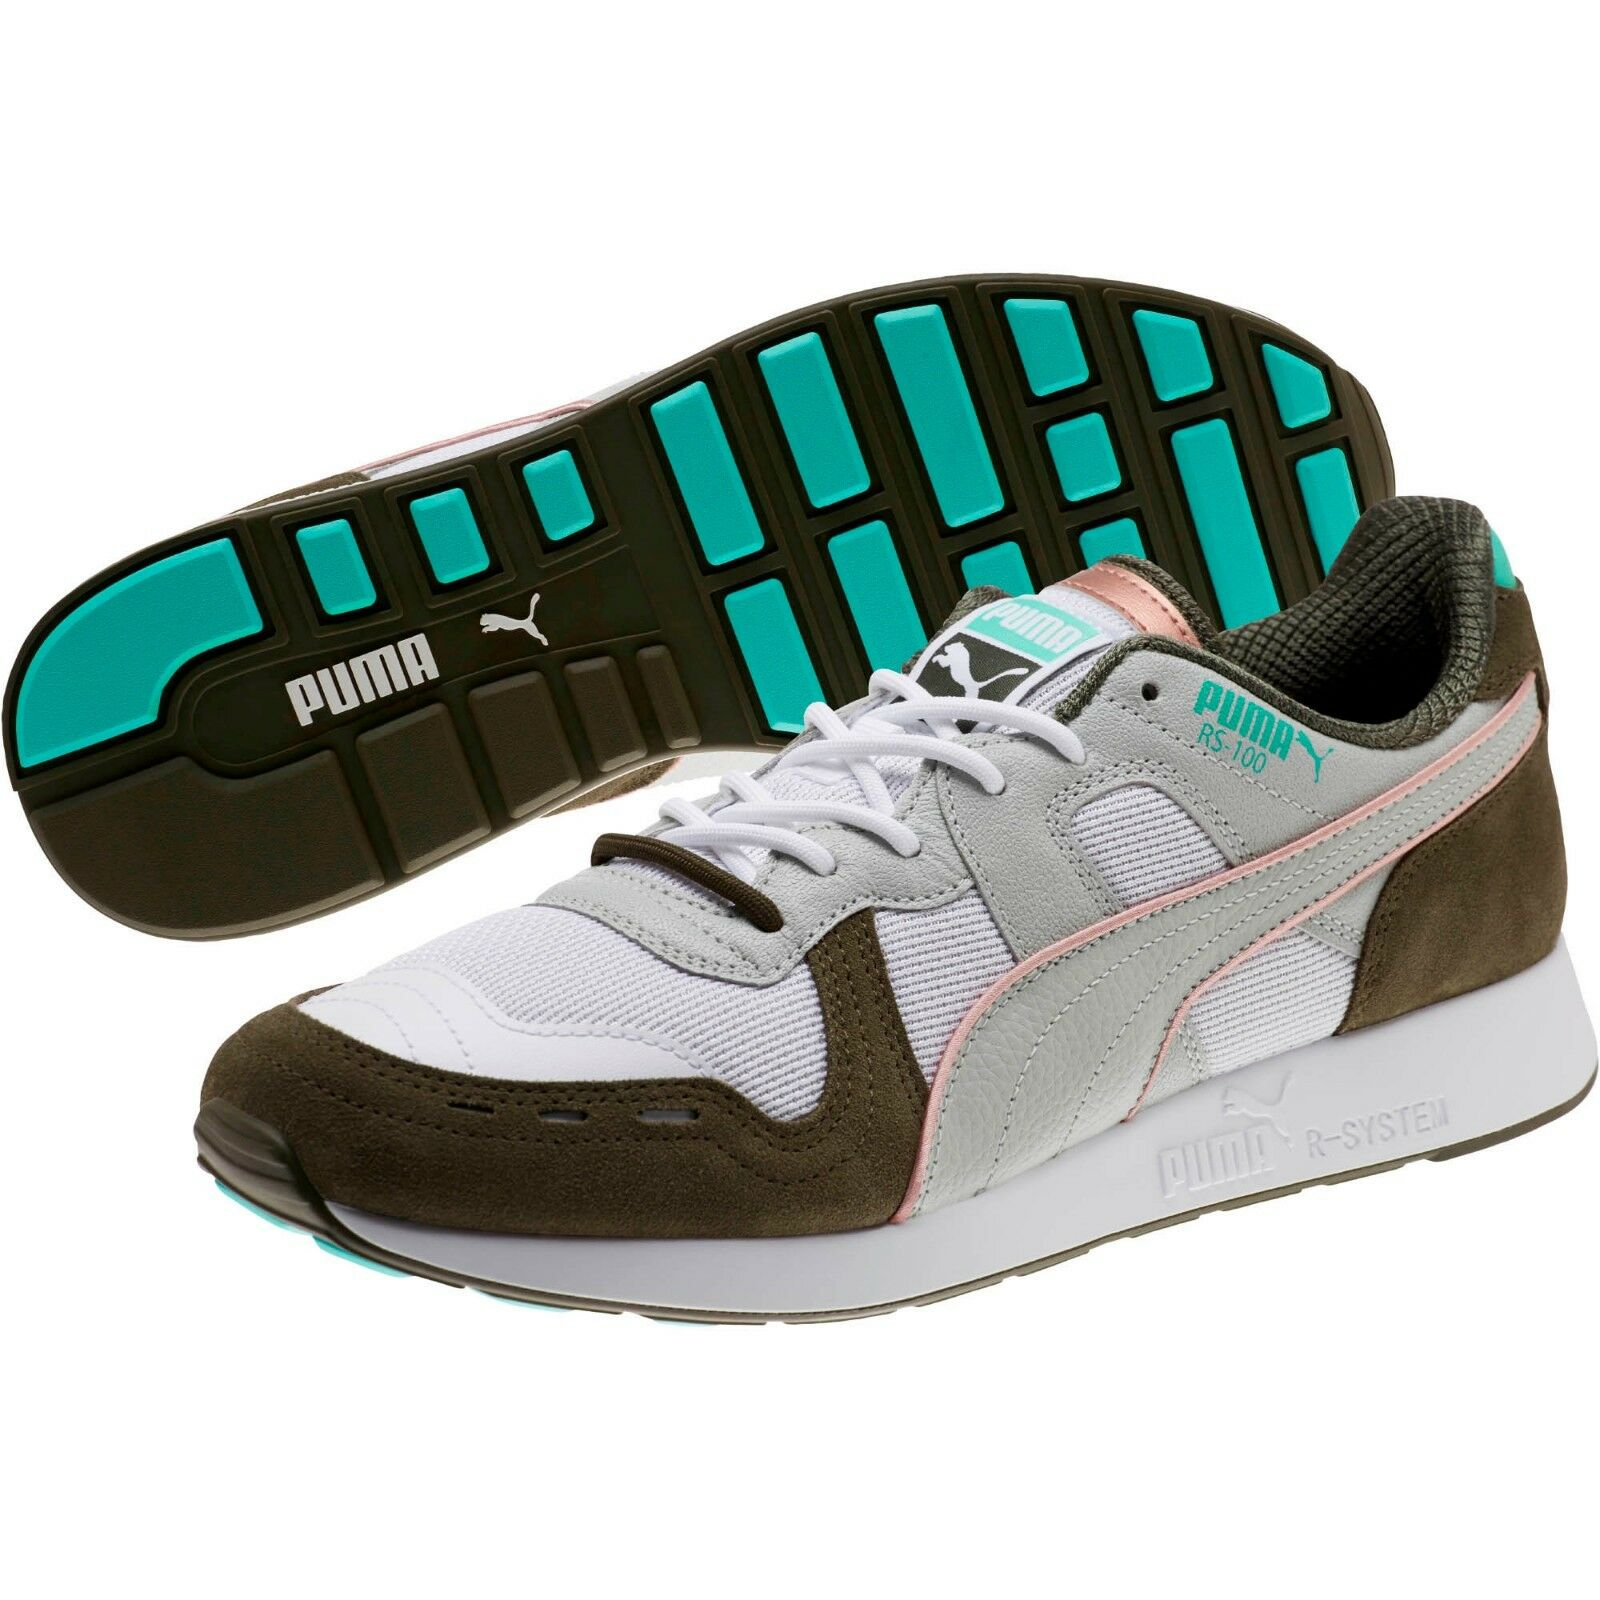 MEN'S PUMA x EMORY JONES RS-100 SNEAKERS BET ON YOURSELF NEW